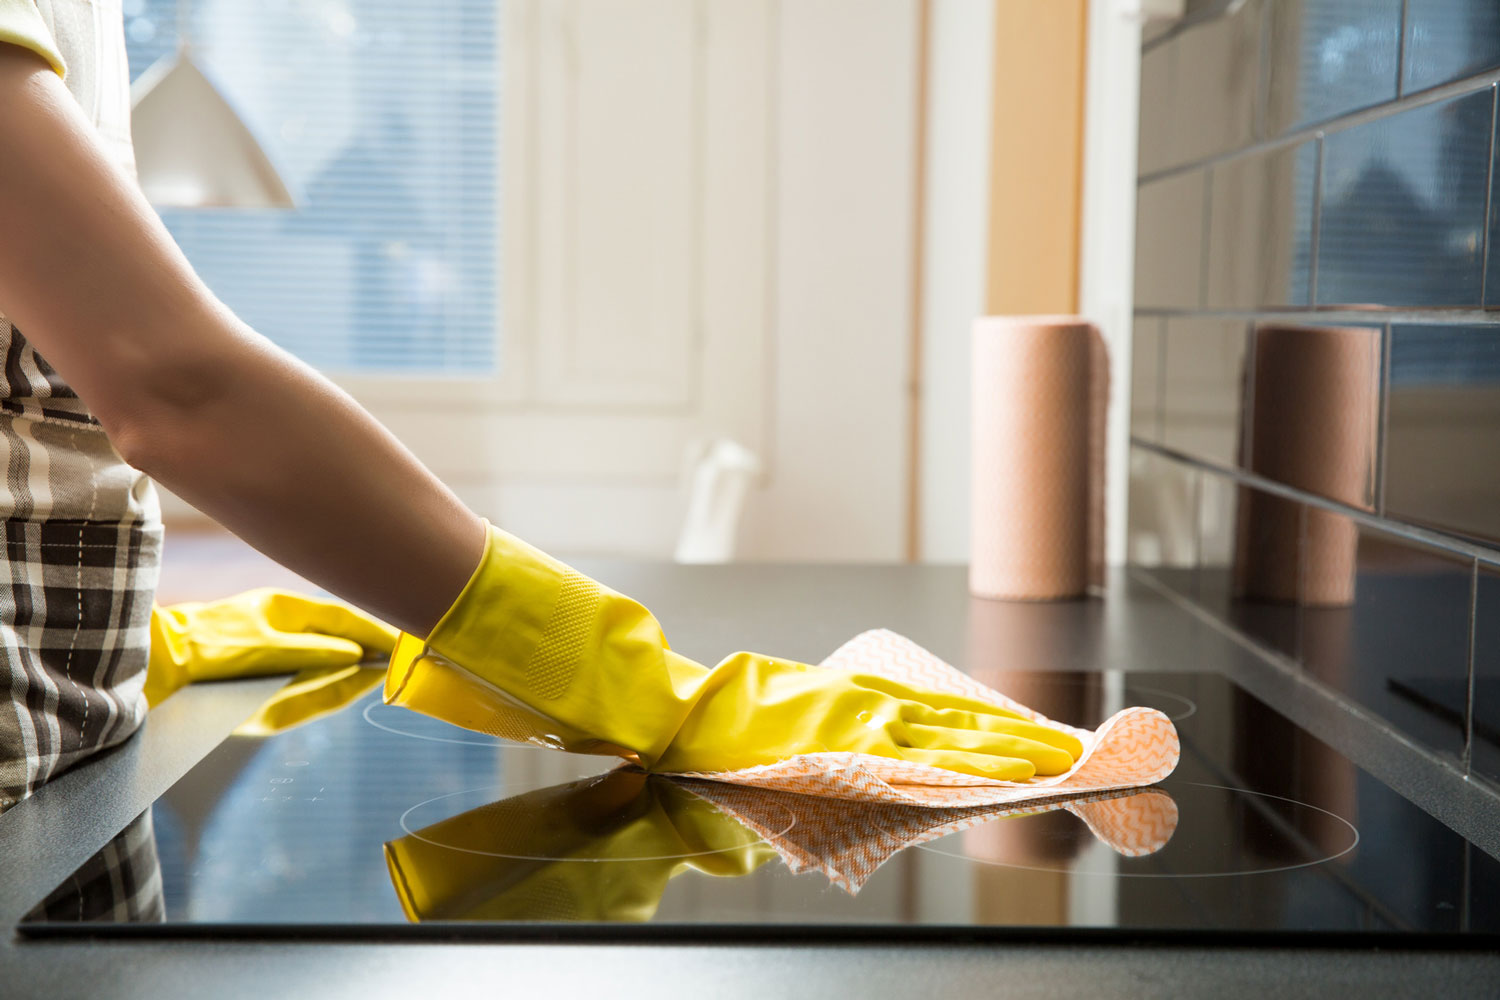 Bed and Breakfast Cleaning Service